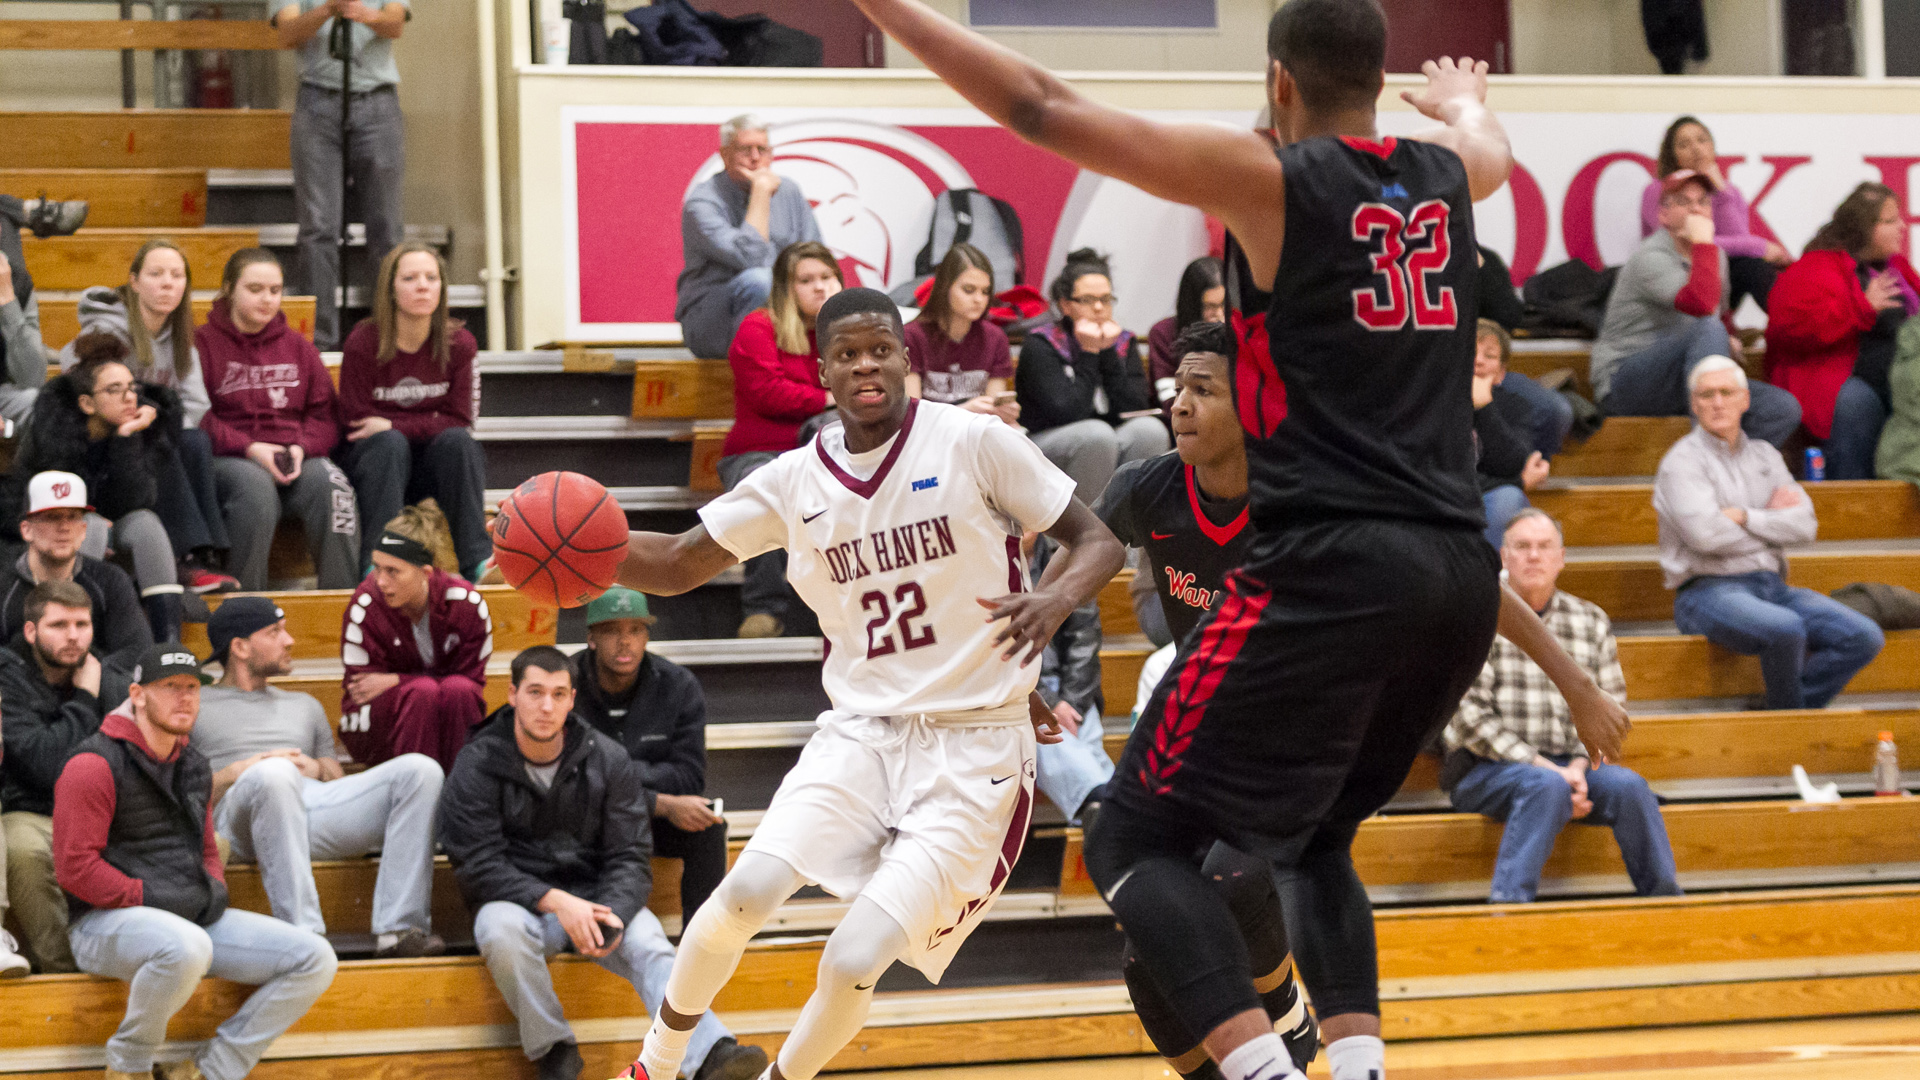 lock haven men The official athletic site of penn state - recap: the penn state men's basketball team made its first appearance of the 2016-17 season tonight in an exhibition game against lock haven.